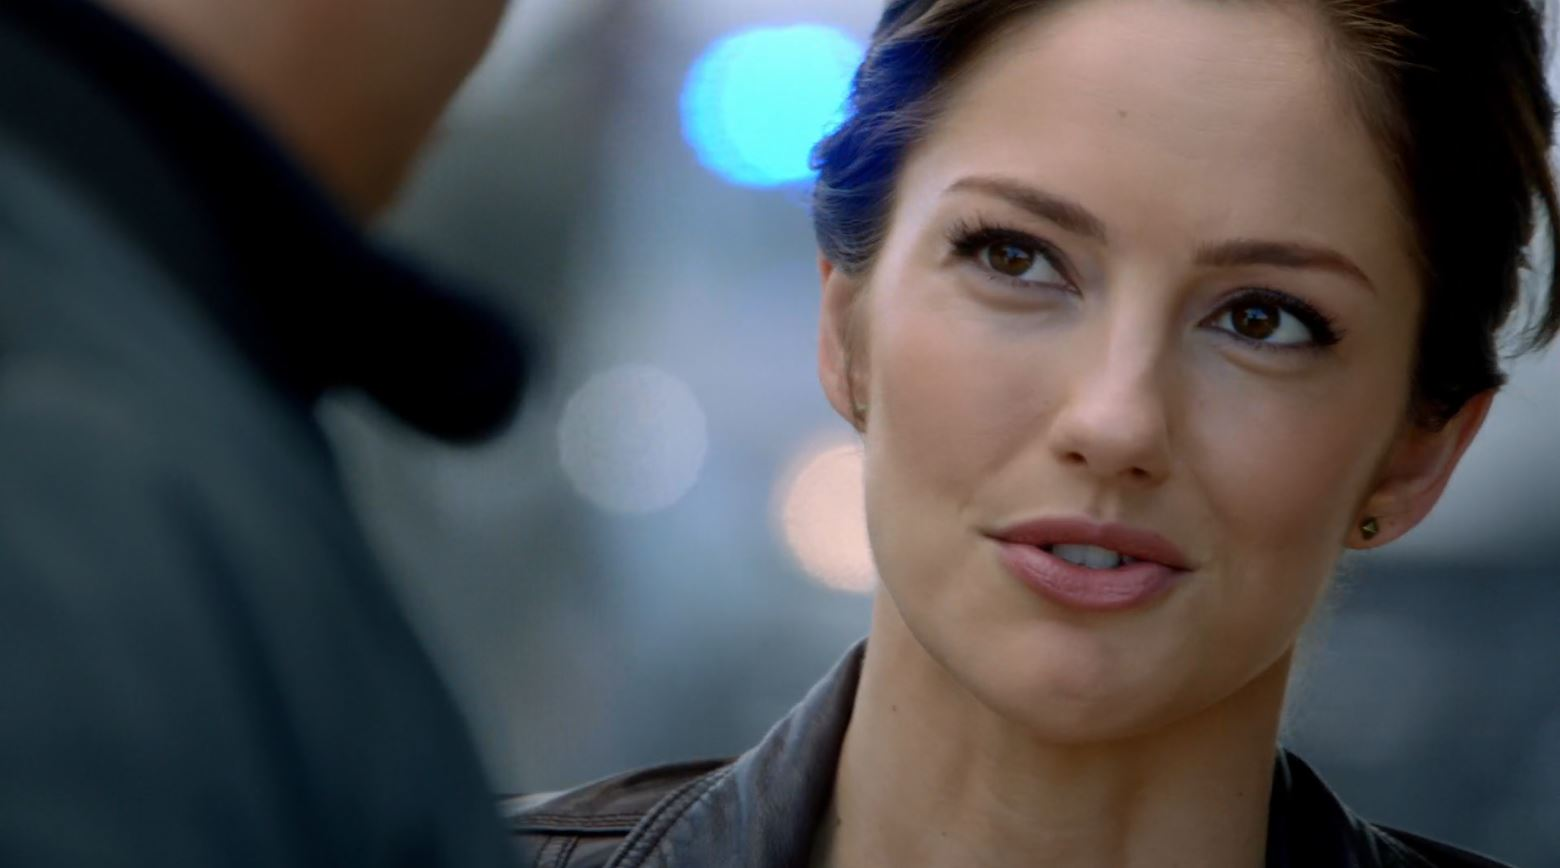 Almost Human - Minka Kelly as Valerie Stahl